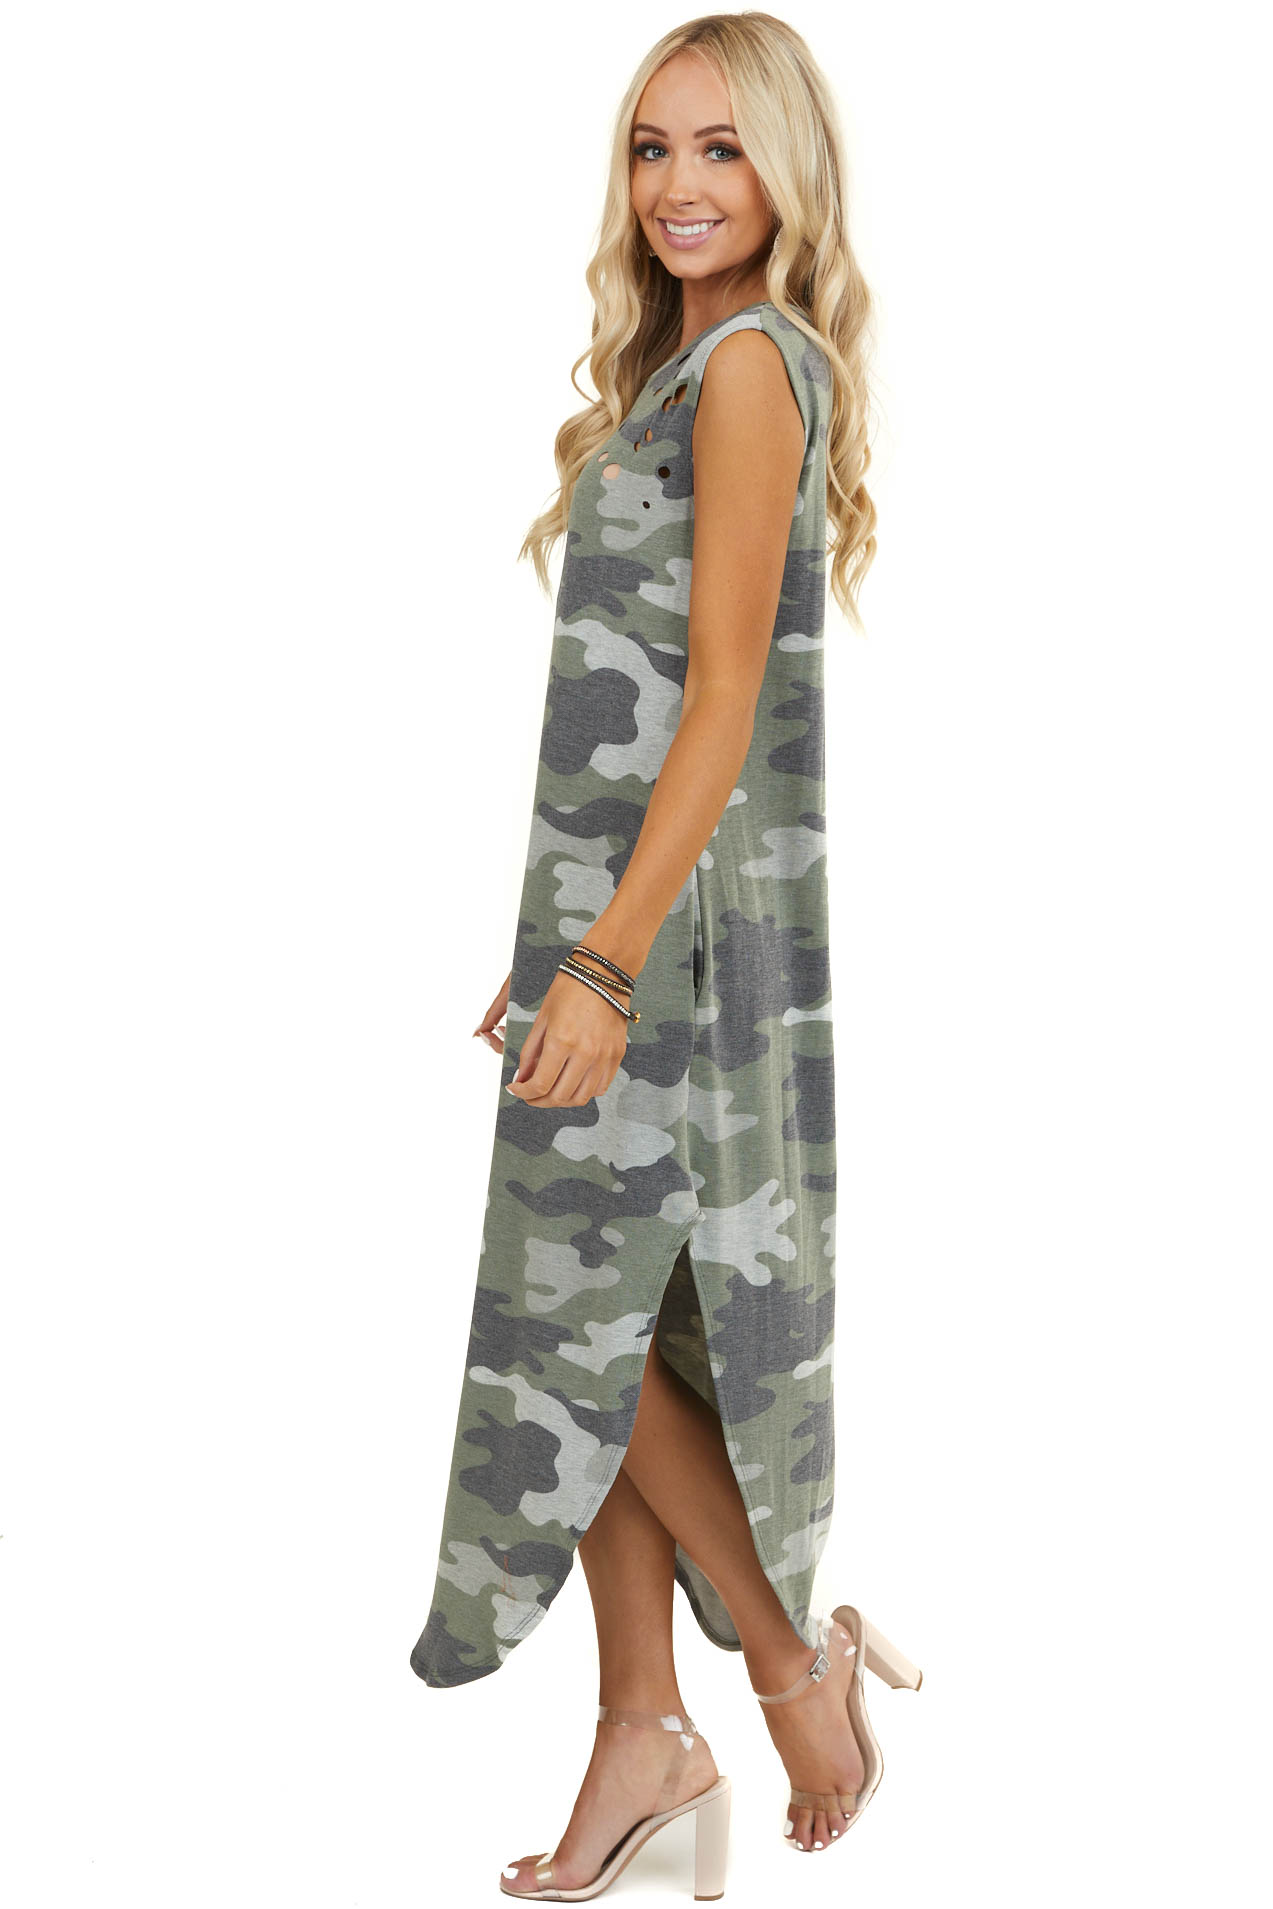 Olive Camo Print Maxi Sleeveless Dress with Laser Cut Details